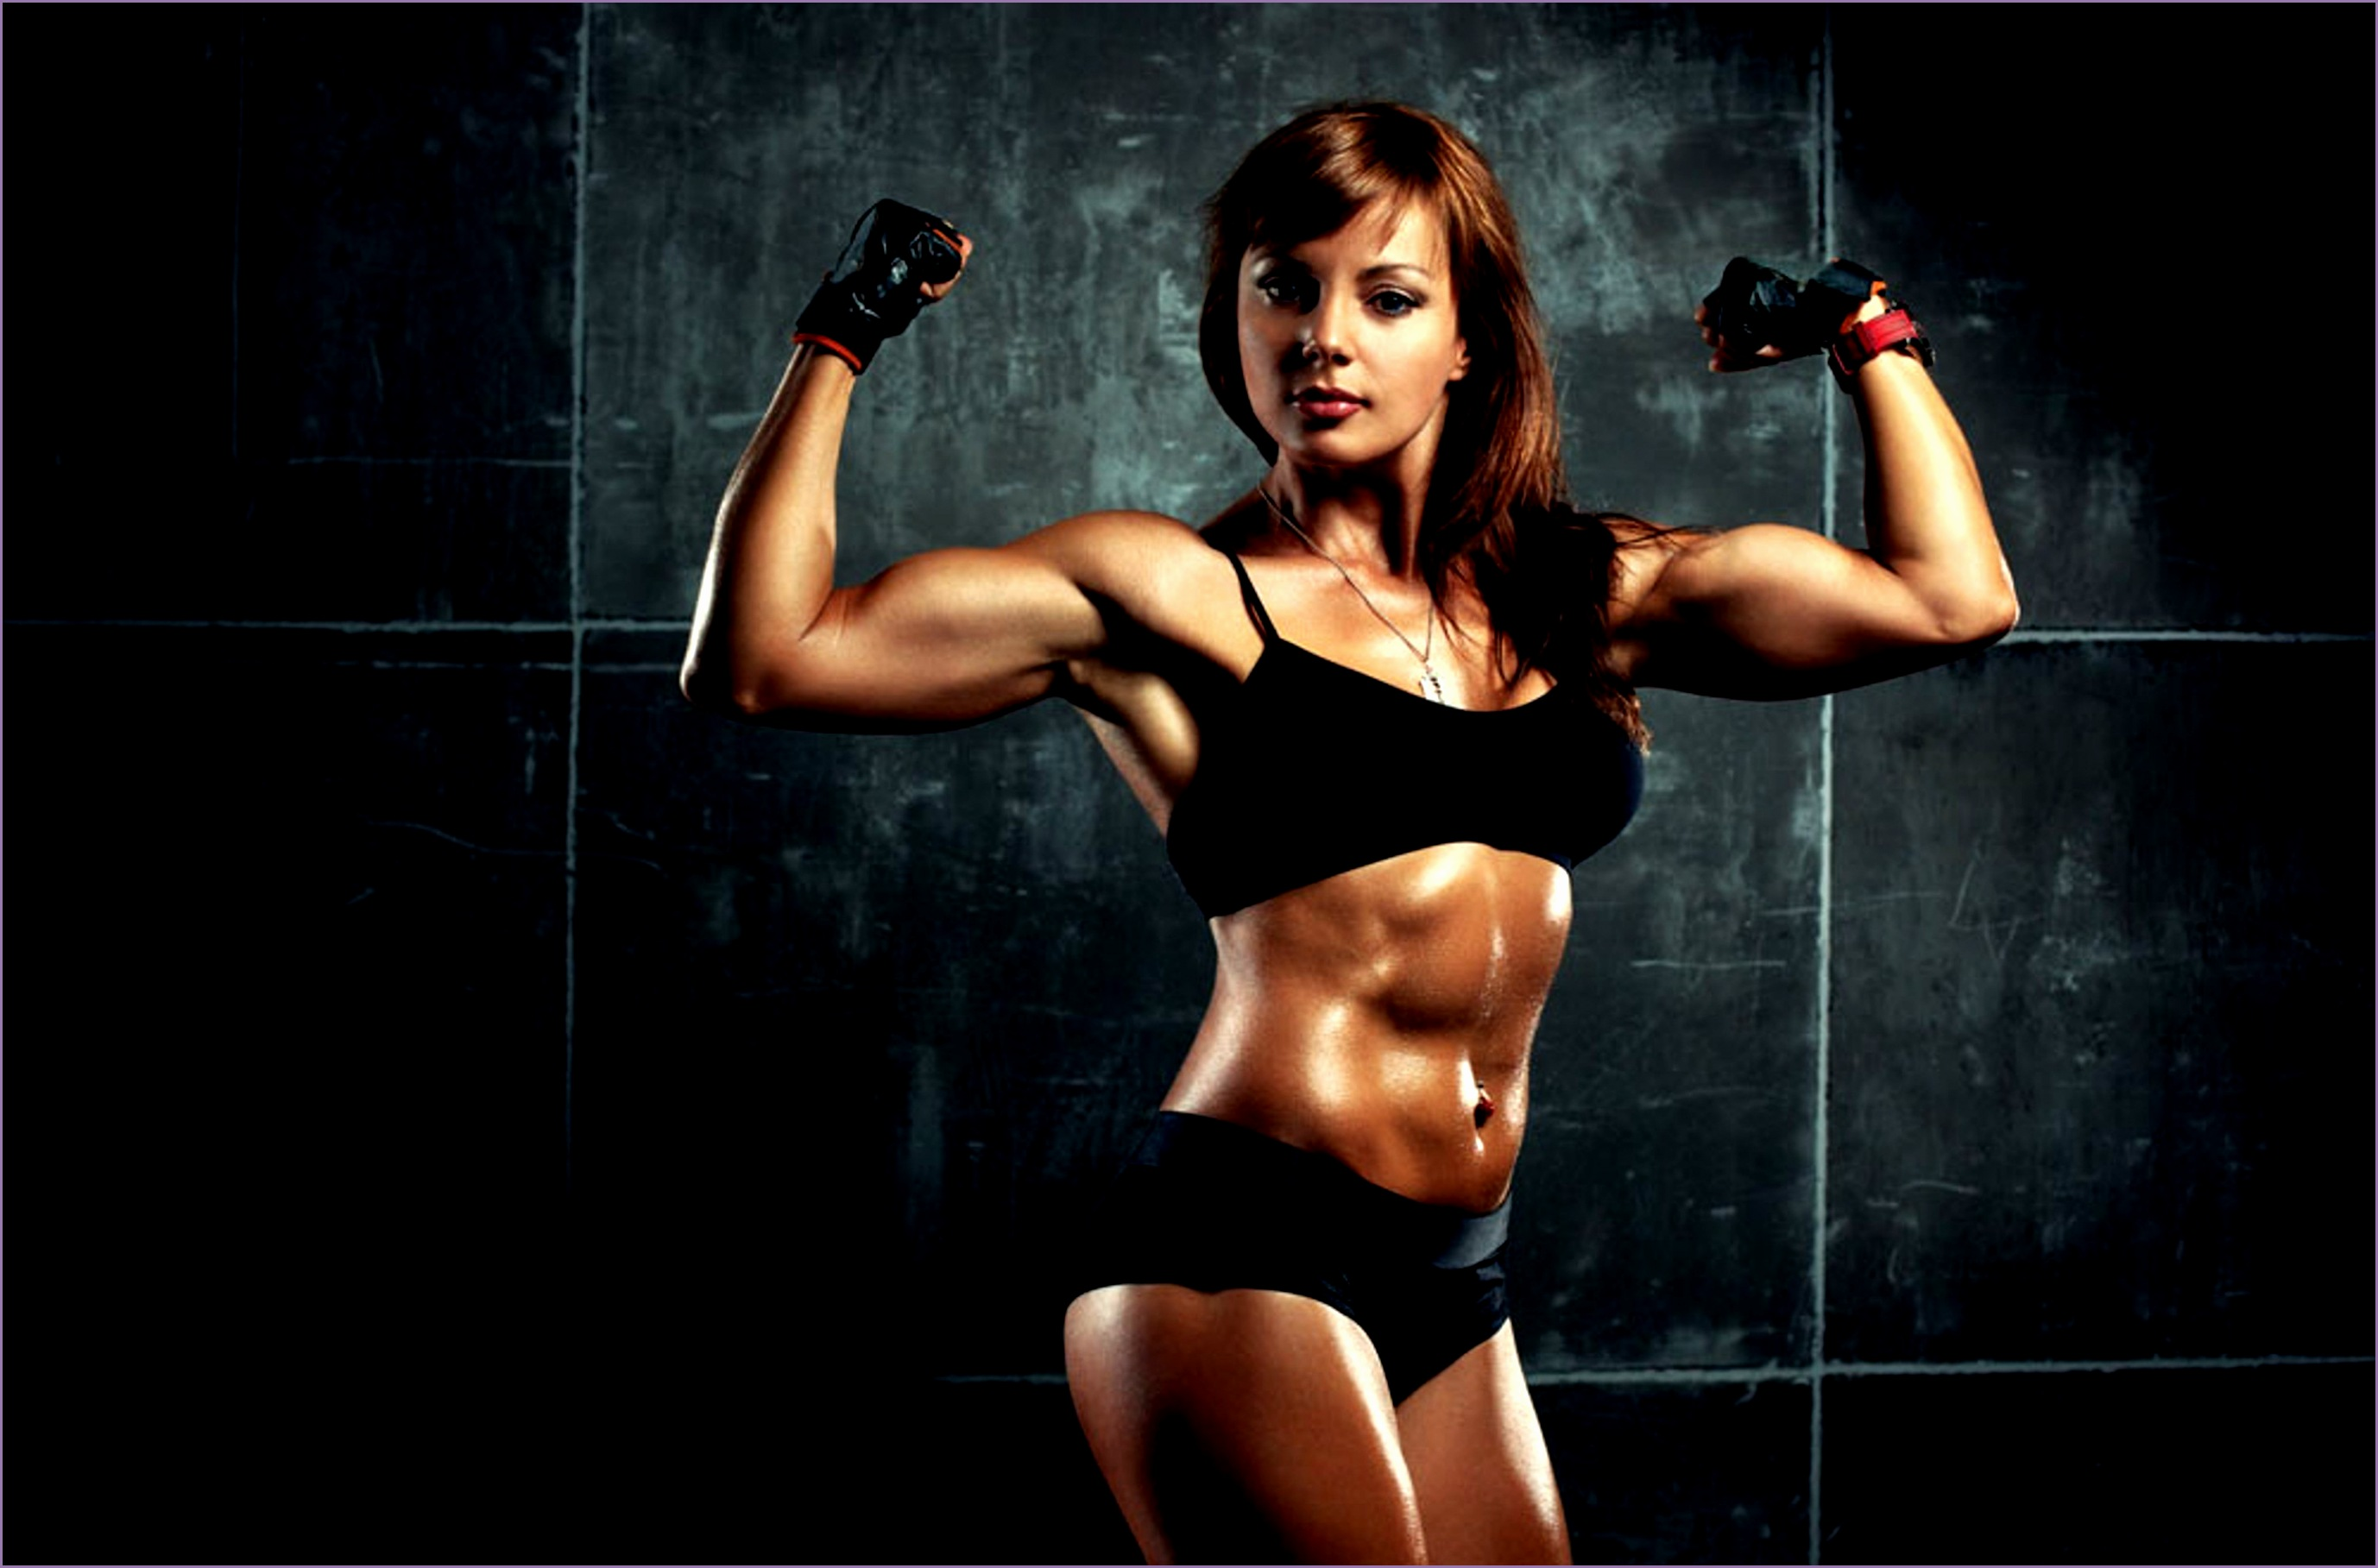 Think, that girl fitness models abs commit